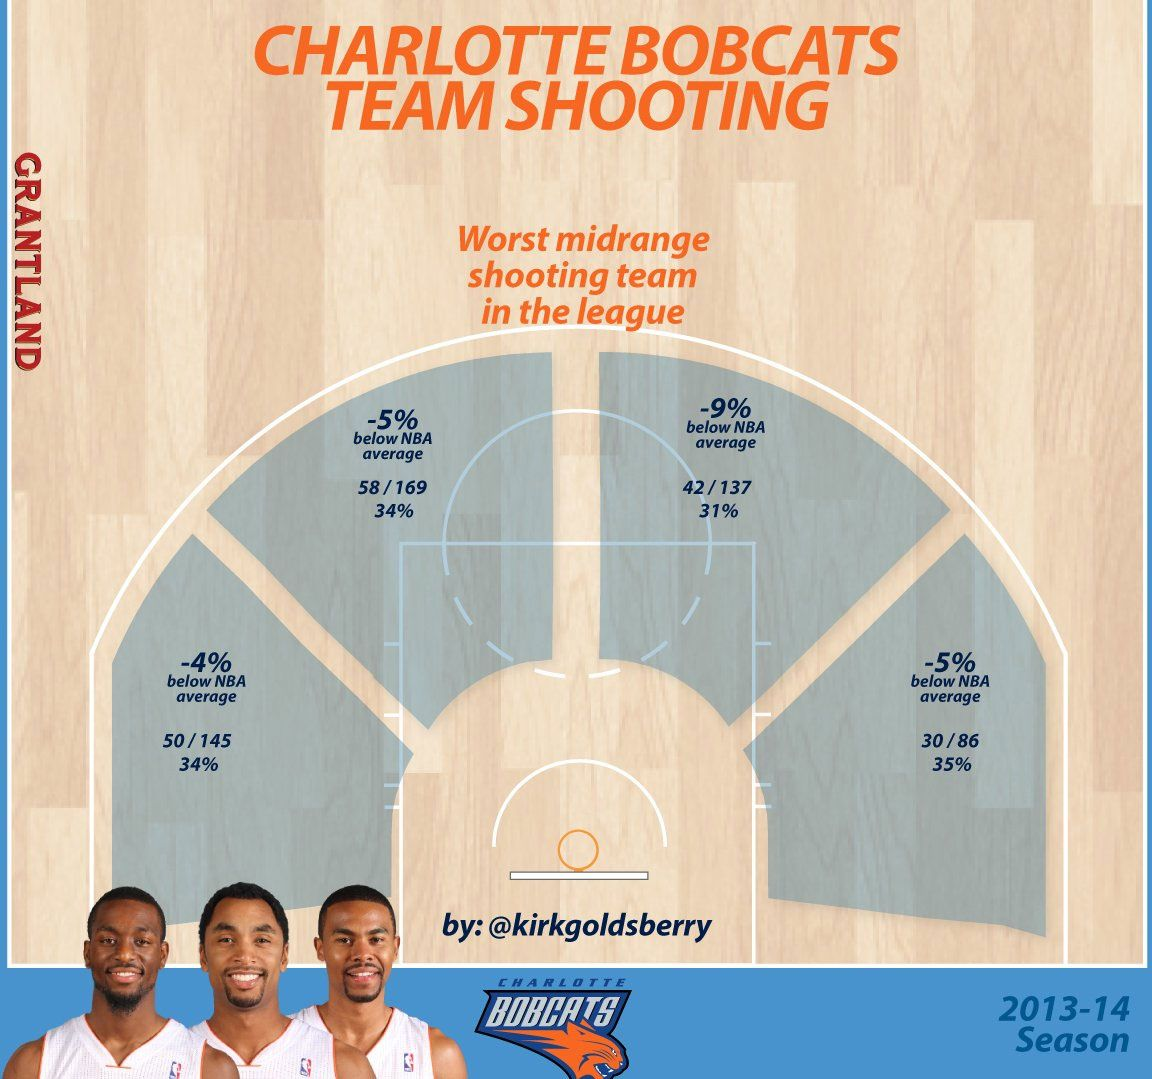 Bobcats Team Shooting - Kirk Goldsberry/Grantland